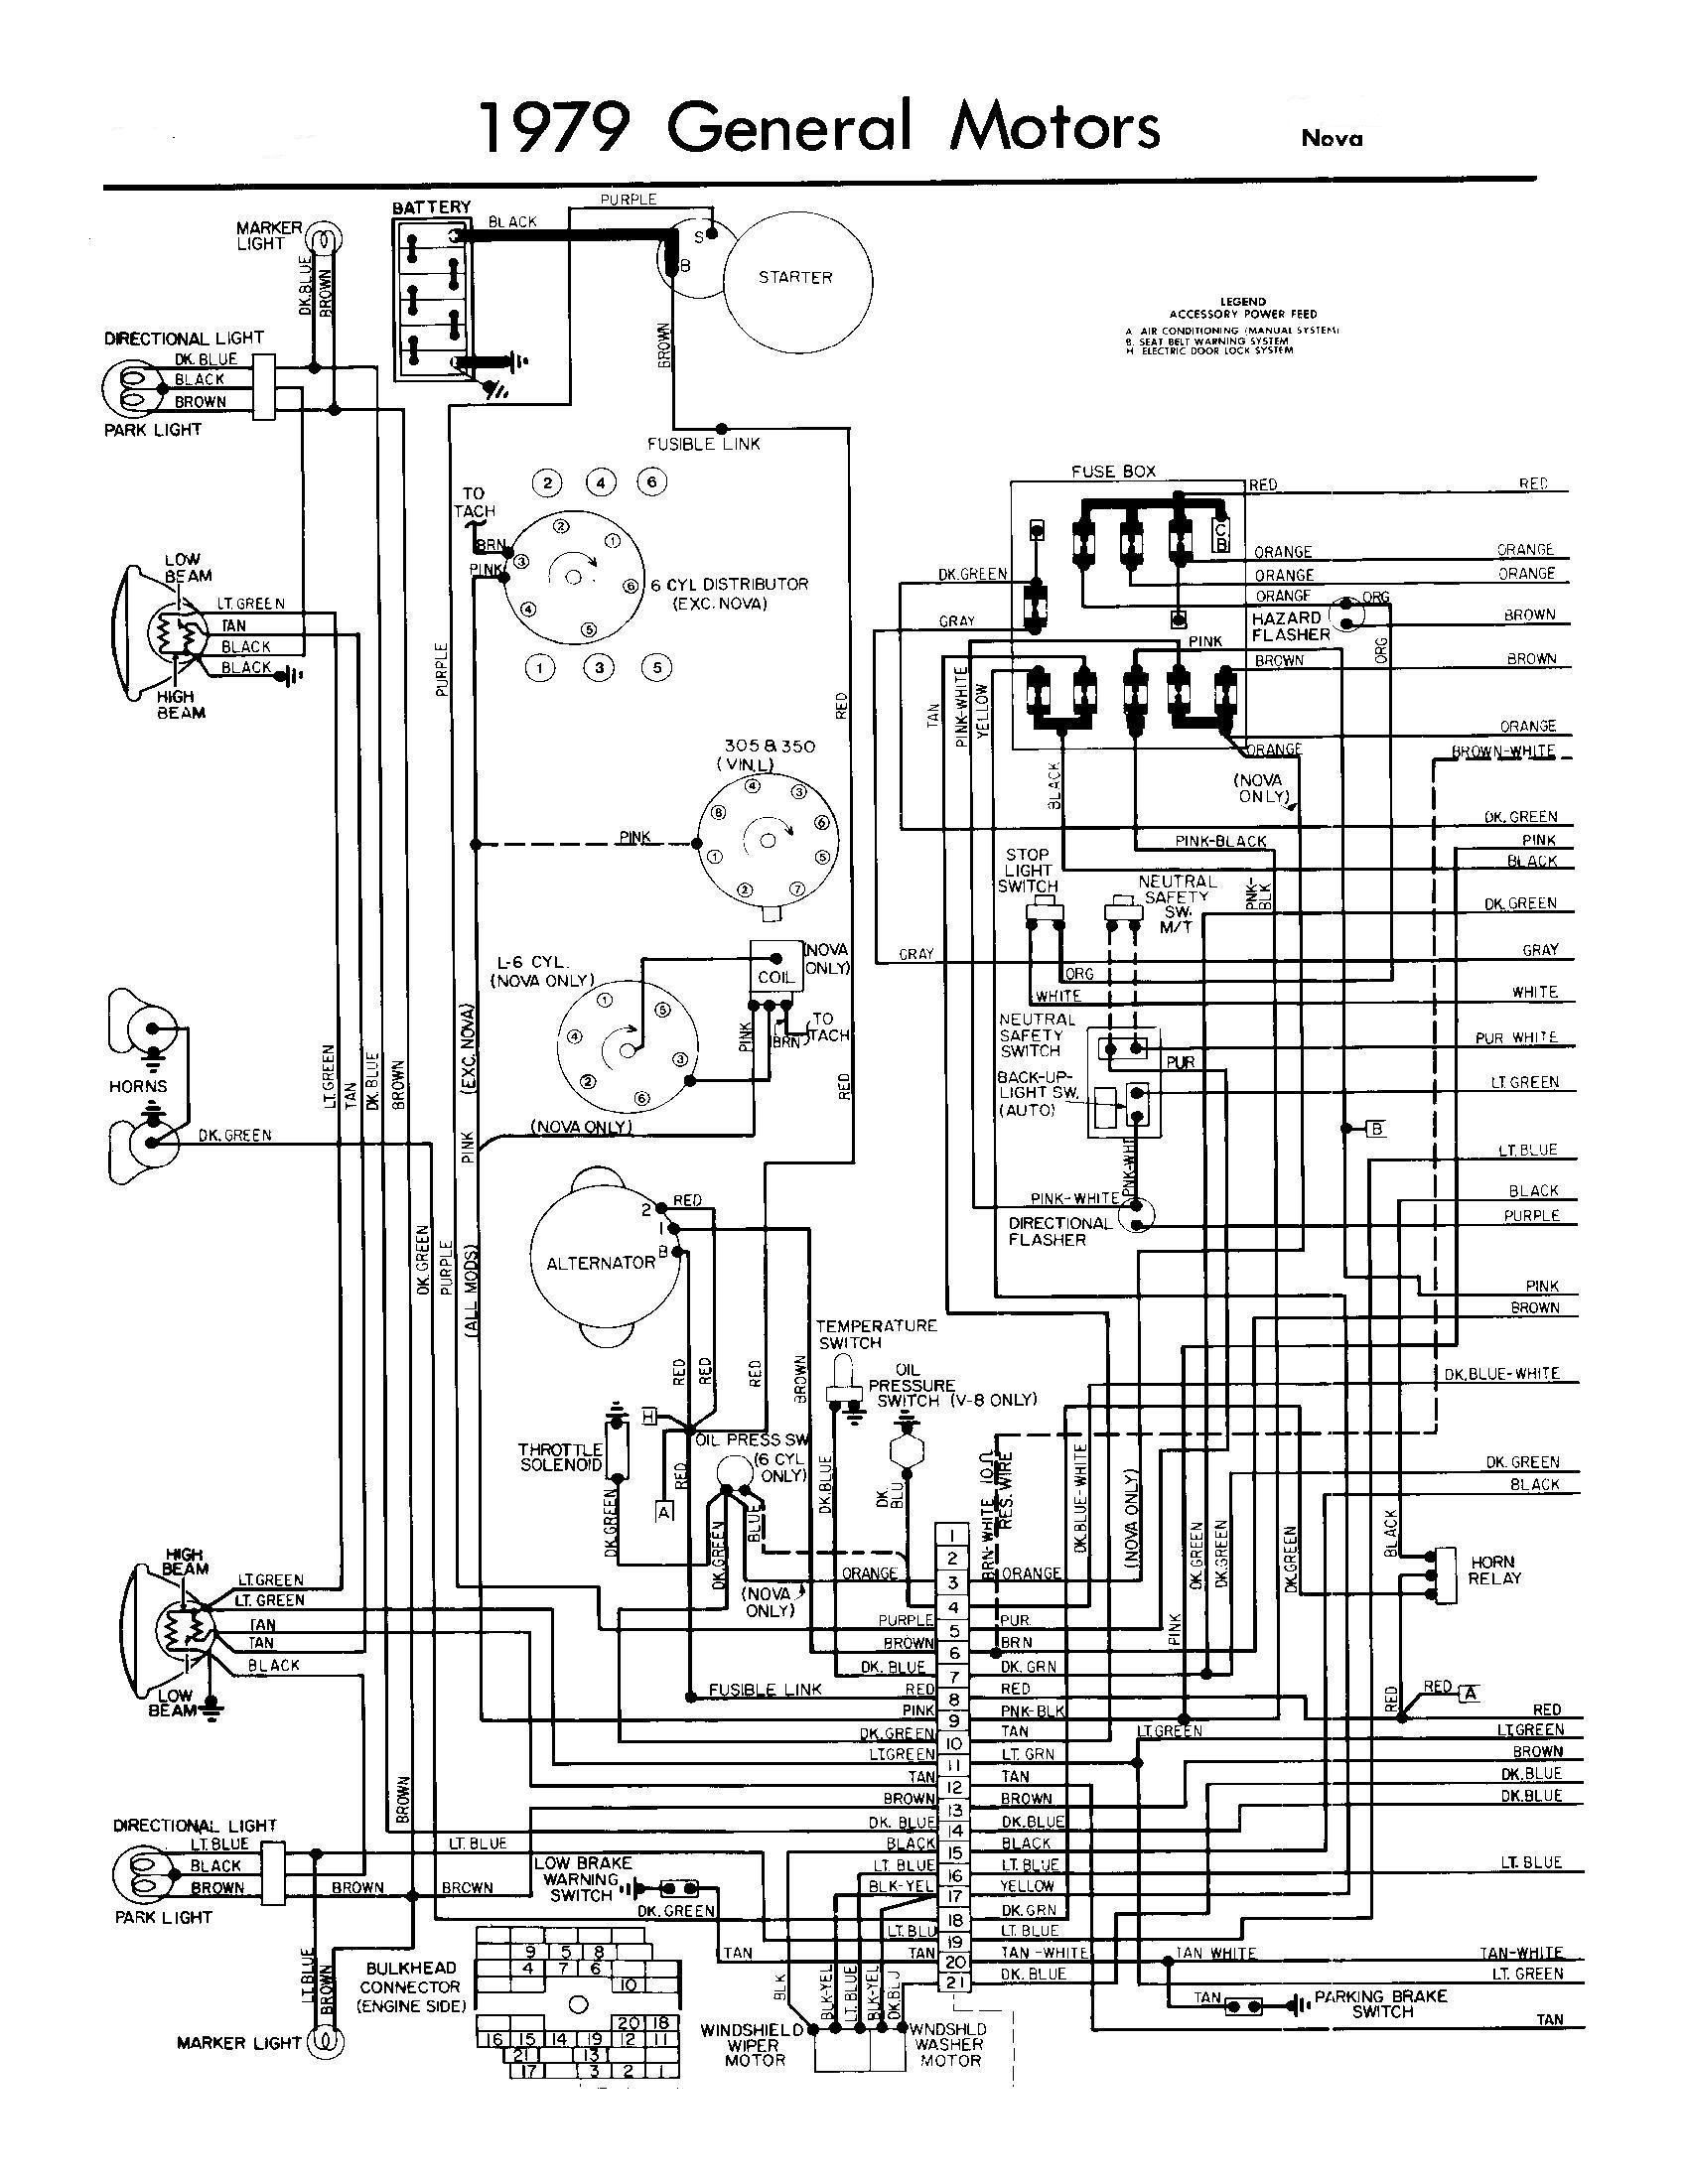 Gmc Truck Wiring Diagram Data Oreo 69 Mustang Turn Signal All Generation Schematics Chevy Nova Forum Custom 79 1966